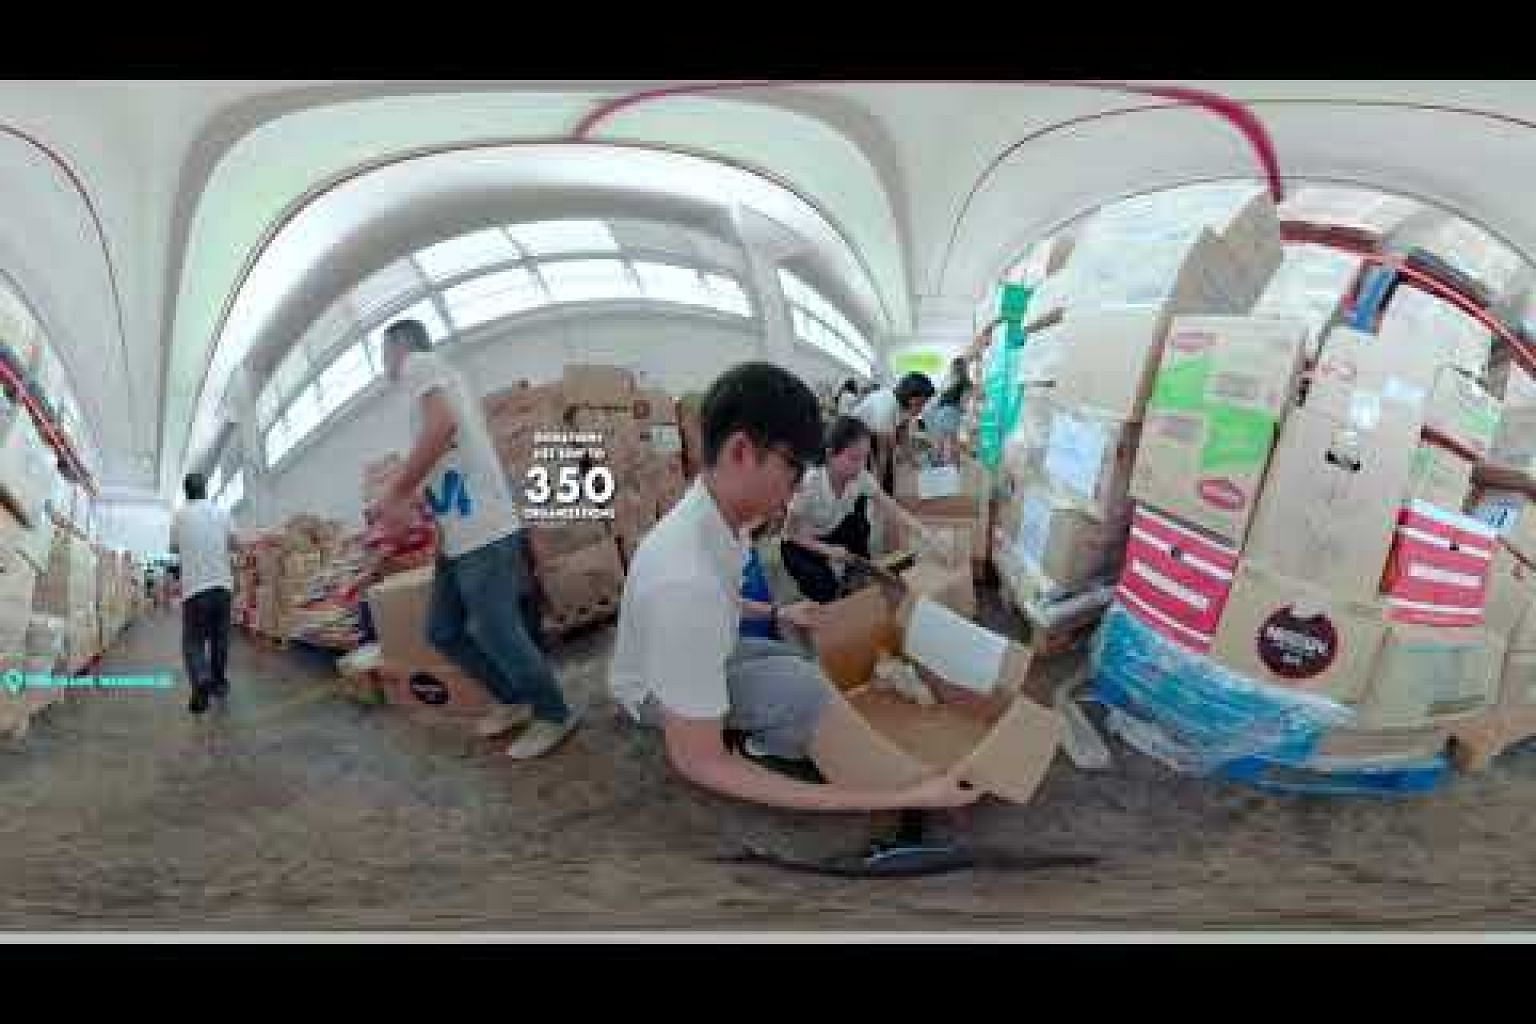 The Food Donation Journey in 360